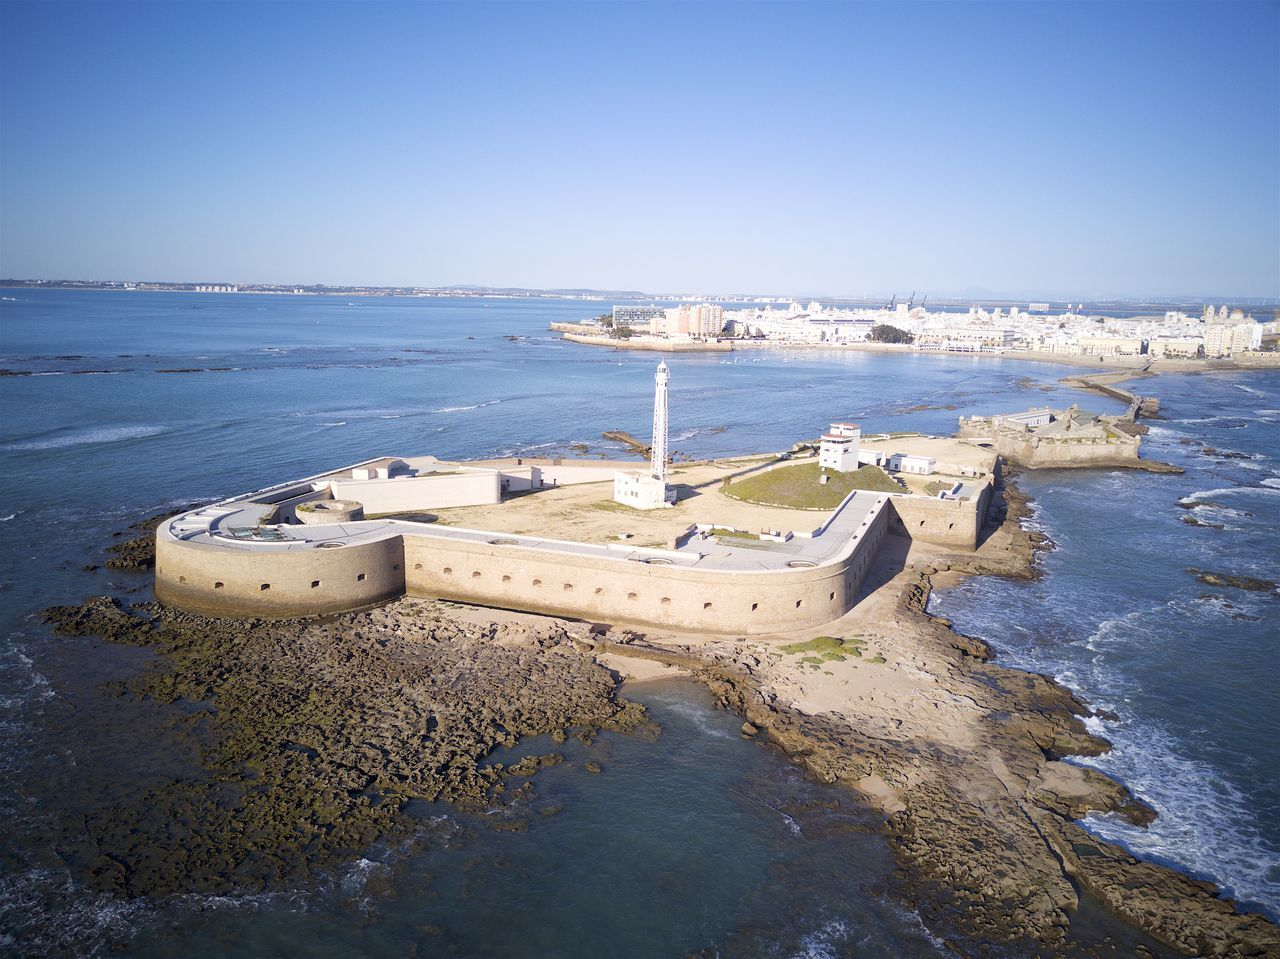 Beach Cadiz Castello Castillo De San Sebastián City Day Horizon Over Water Lighttower Outdoors Sea Sky Stones Water